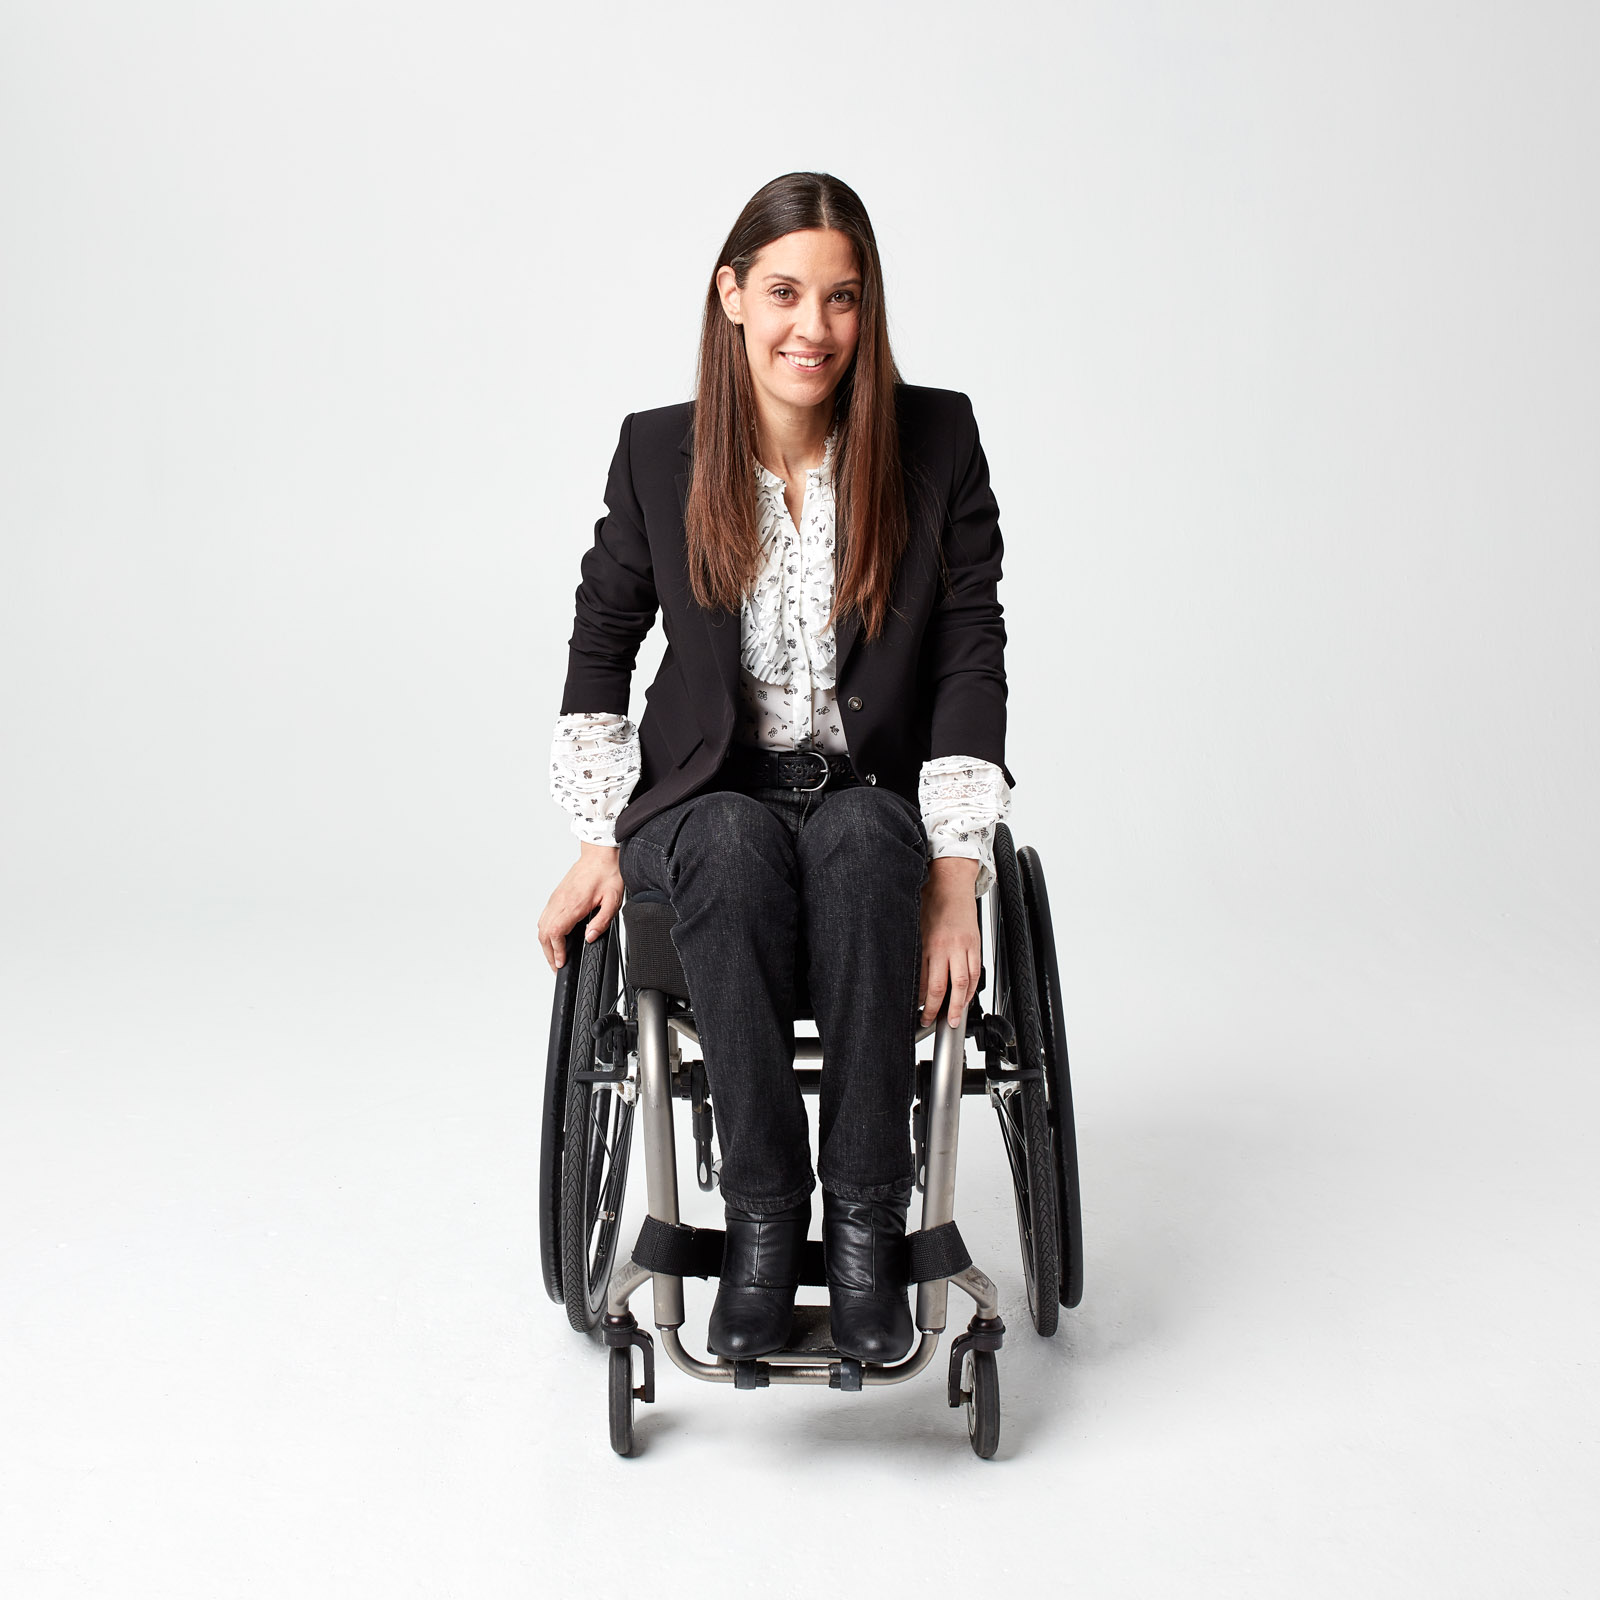 The Canadian Designer Creating Fashion for People in Wheelchairs